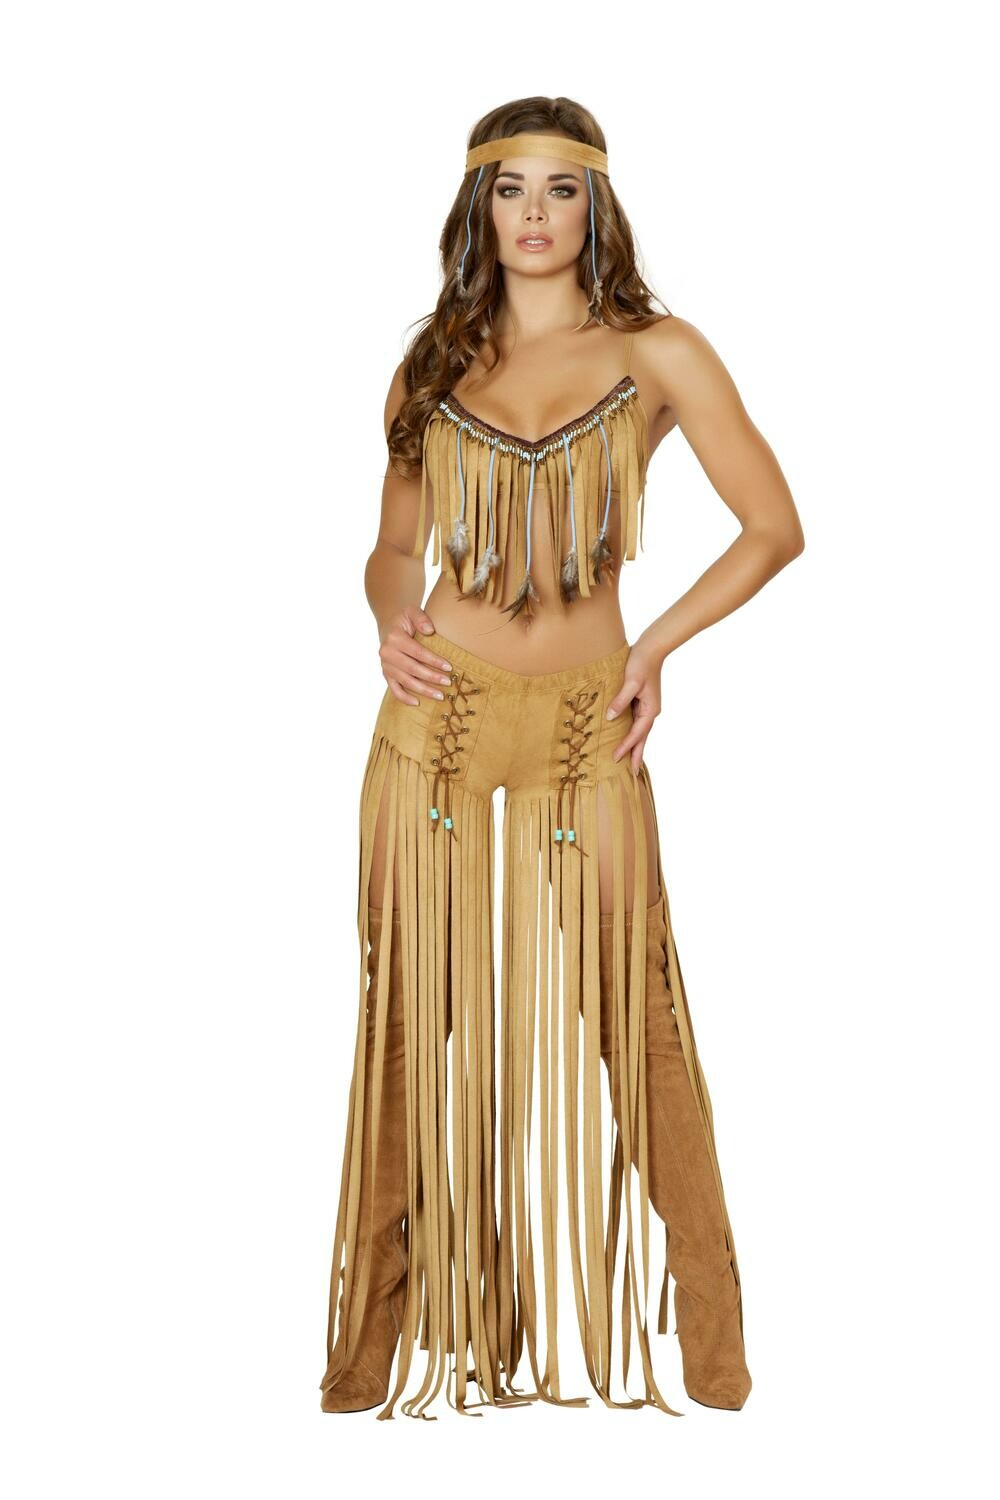 COSTUMES| MICELLANEOUS|  3pc American Indian Hottie